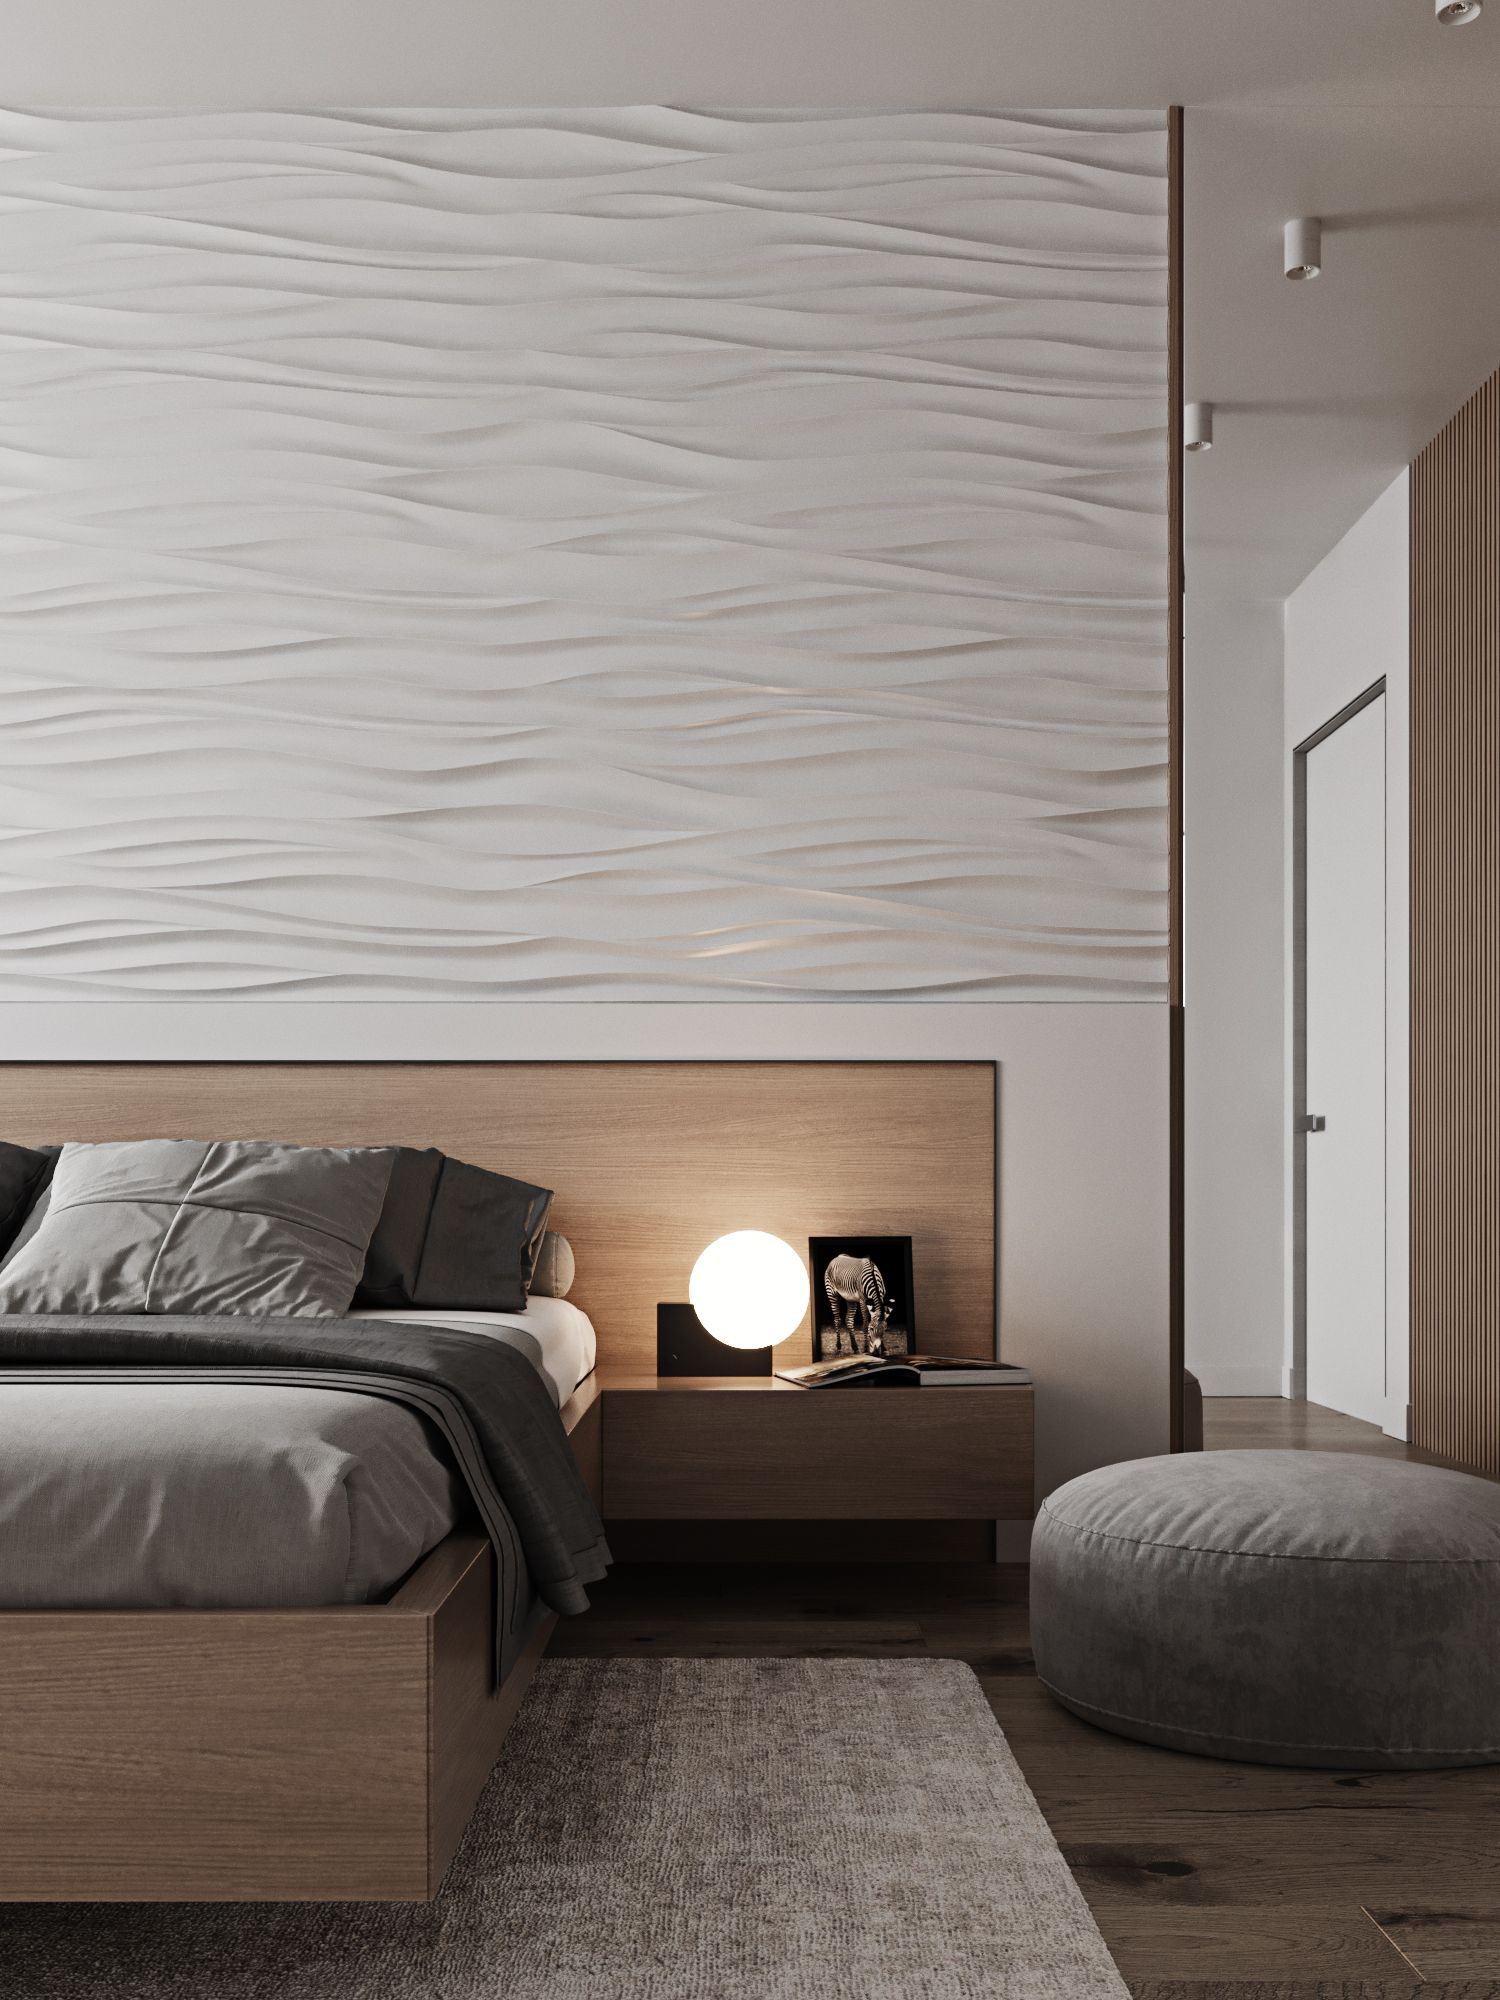 Turn Your Wall Into A Feature With Our 3d Plaster Wall Panels Made From 100 Gypsum Plaster The Panels Are Available In 2020 Wall Panels 3d Wall Panels Plaster Walls